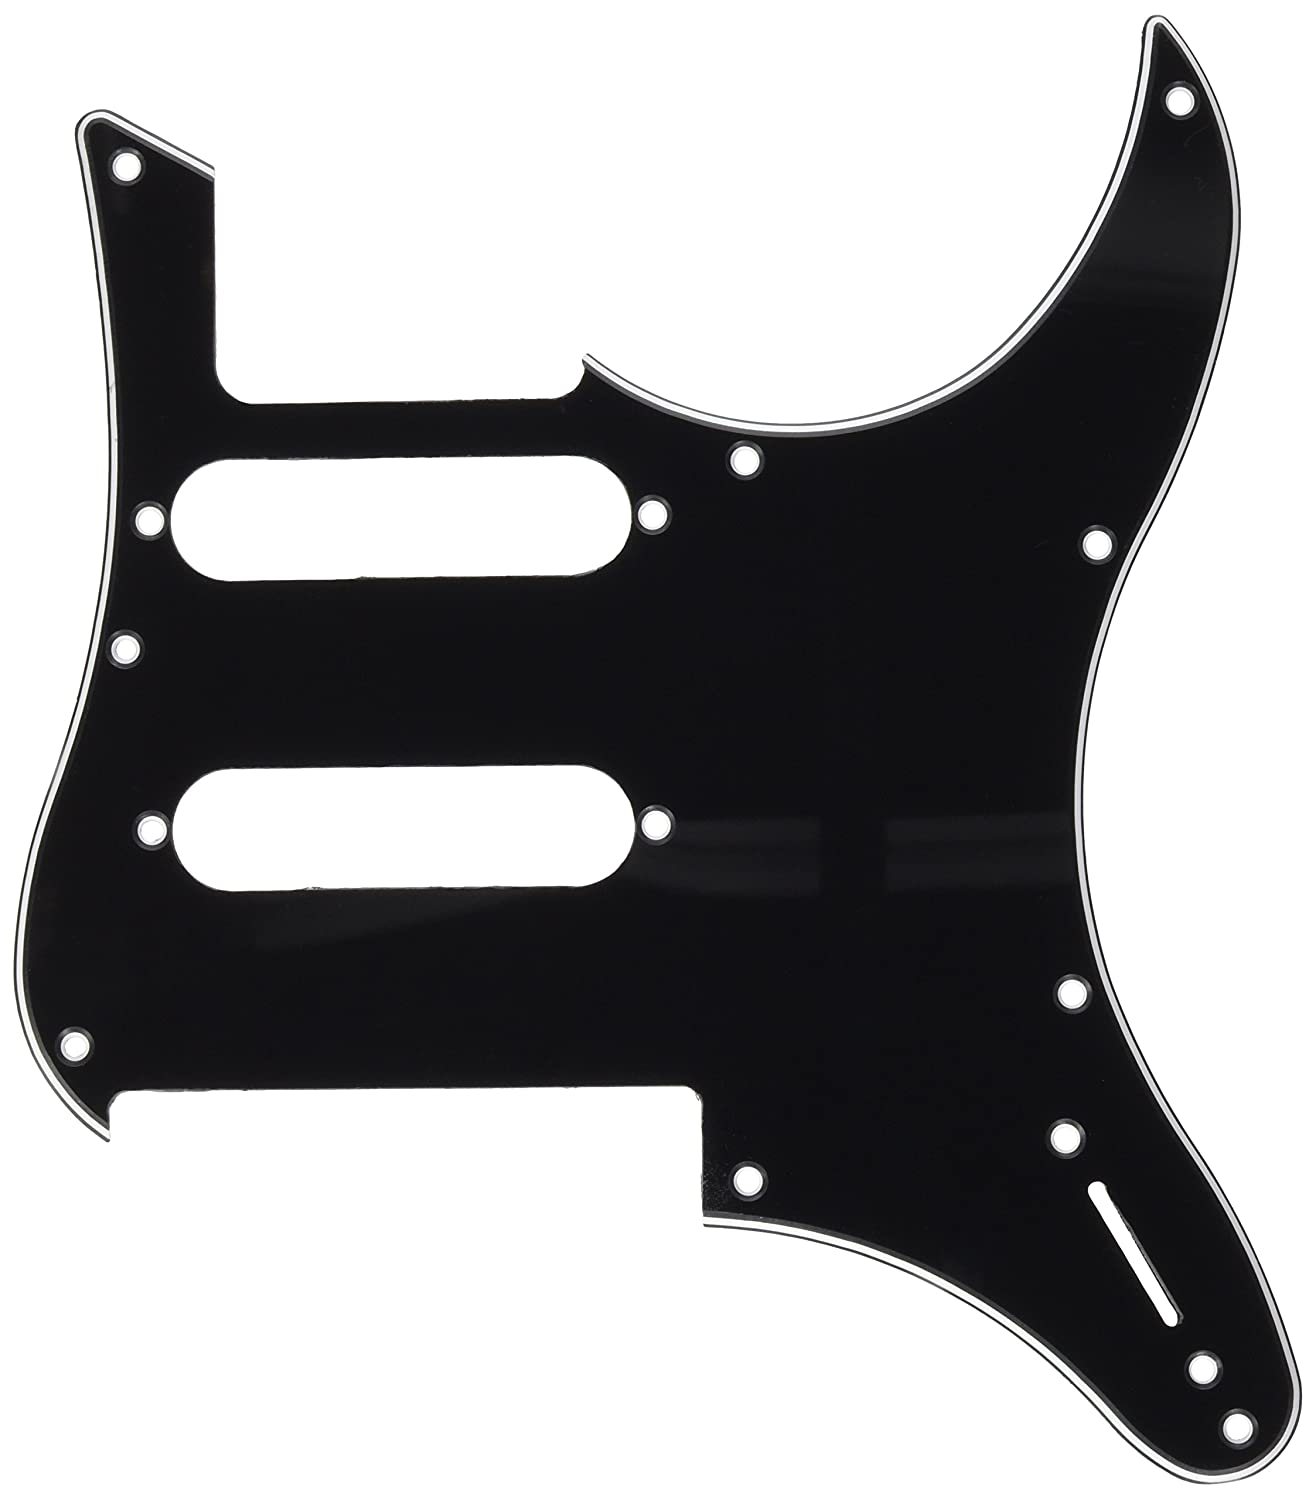 Kmise MI0260 Electric Guitar Pickguard for Yamaha Pacifica 112V Replacement 3-Ply, Black